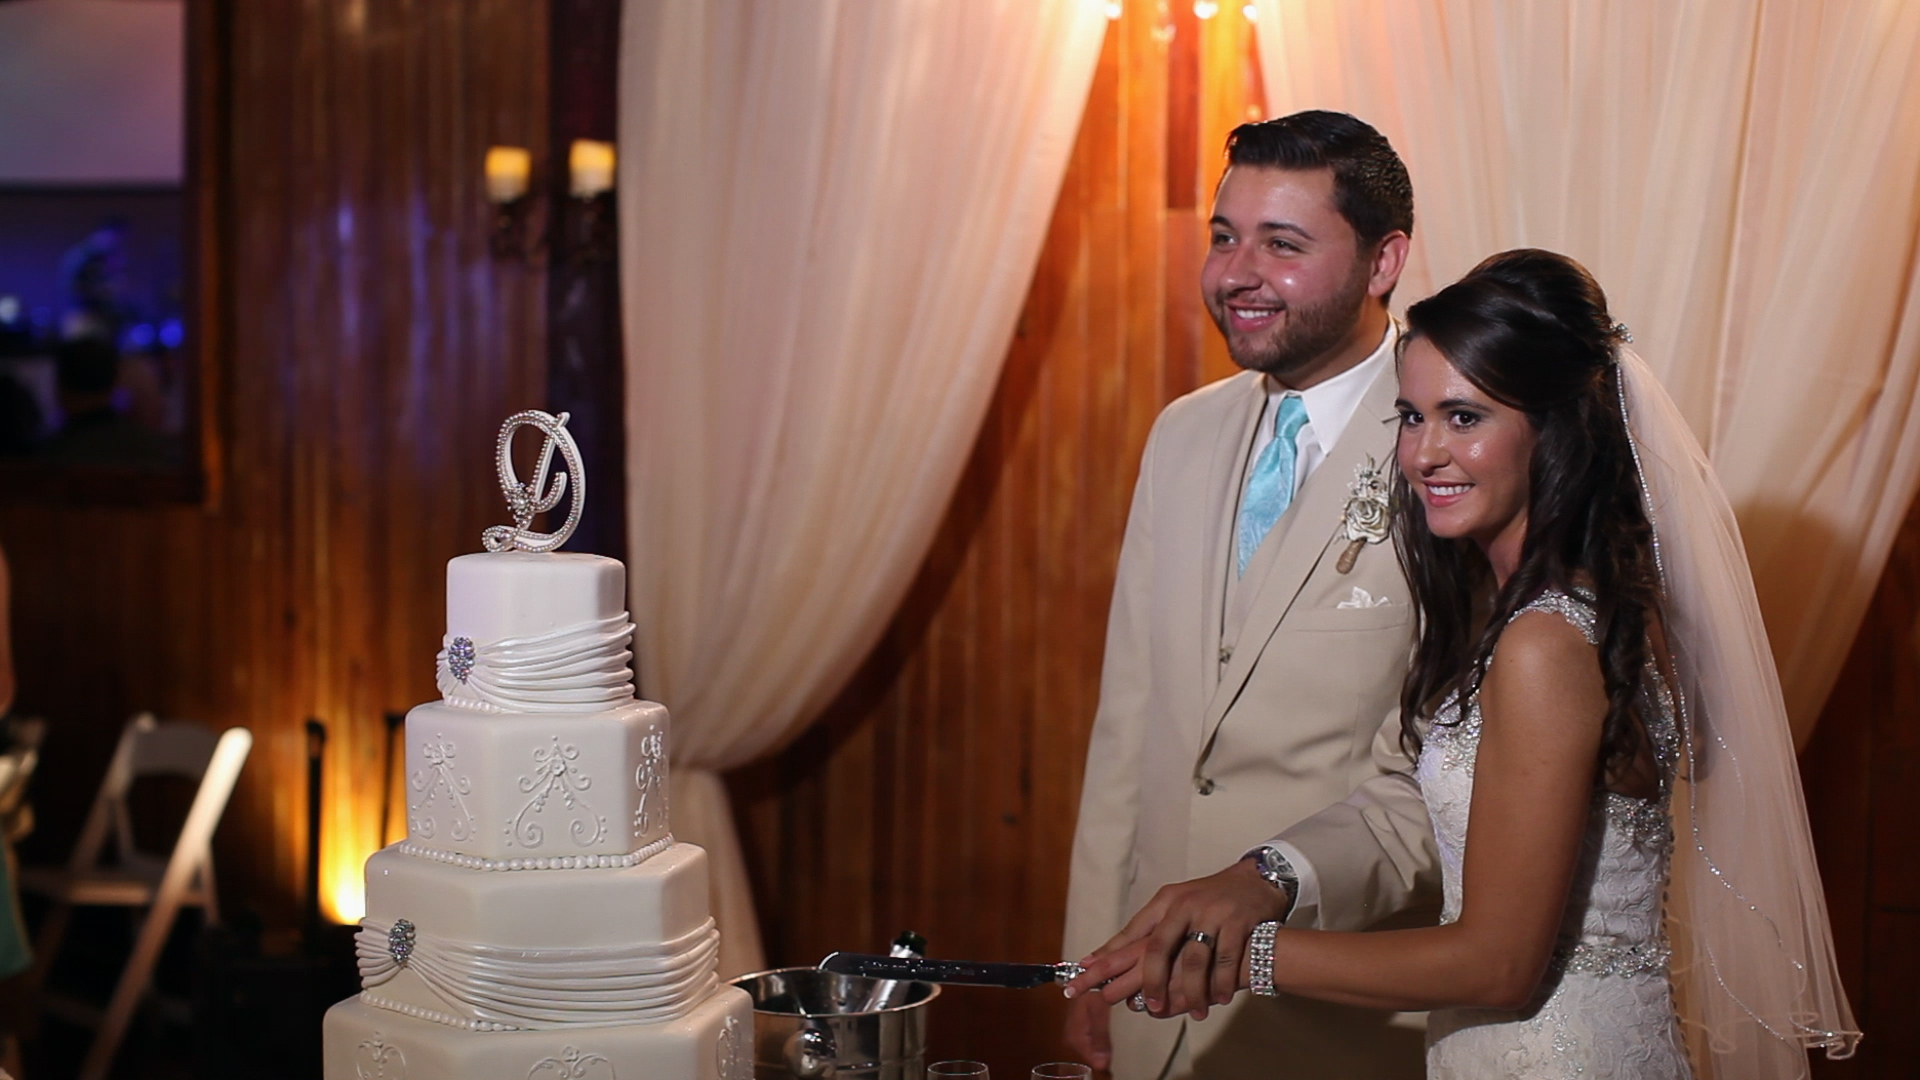 We loved the newlyweds' personalized cake.